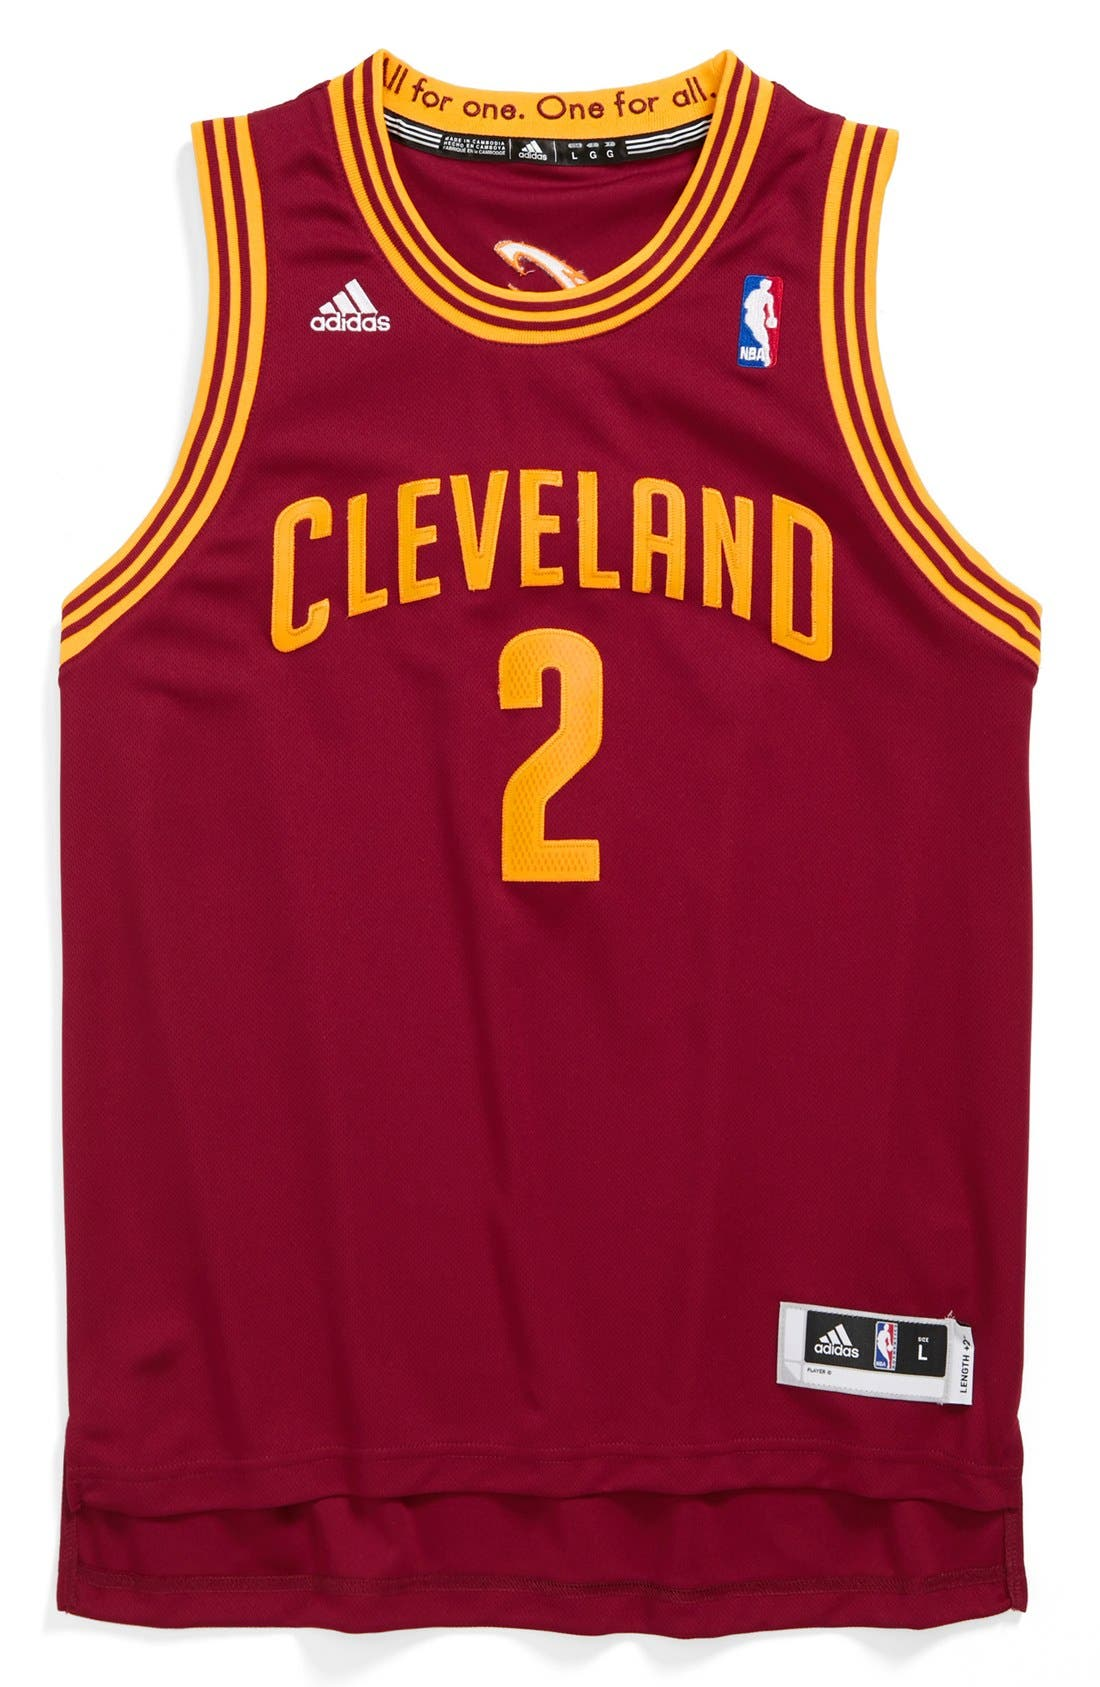 Alternate Image 1 Selected - adidas 'Cleveland Cavaliers, Kyrie Irving - Swingman Road' Jersey (Big Boys)